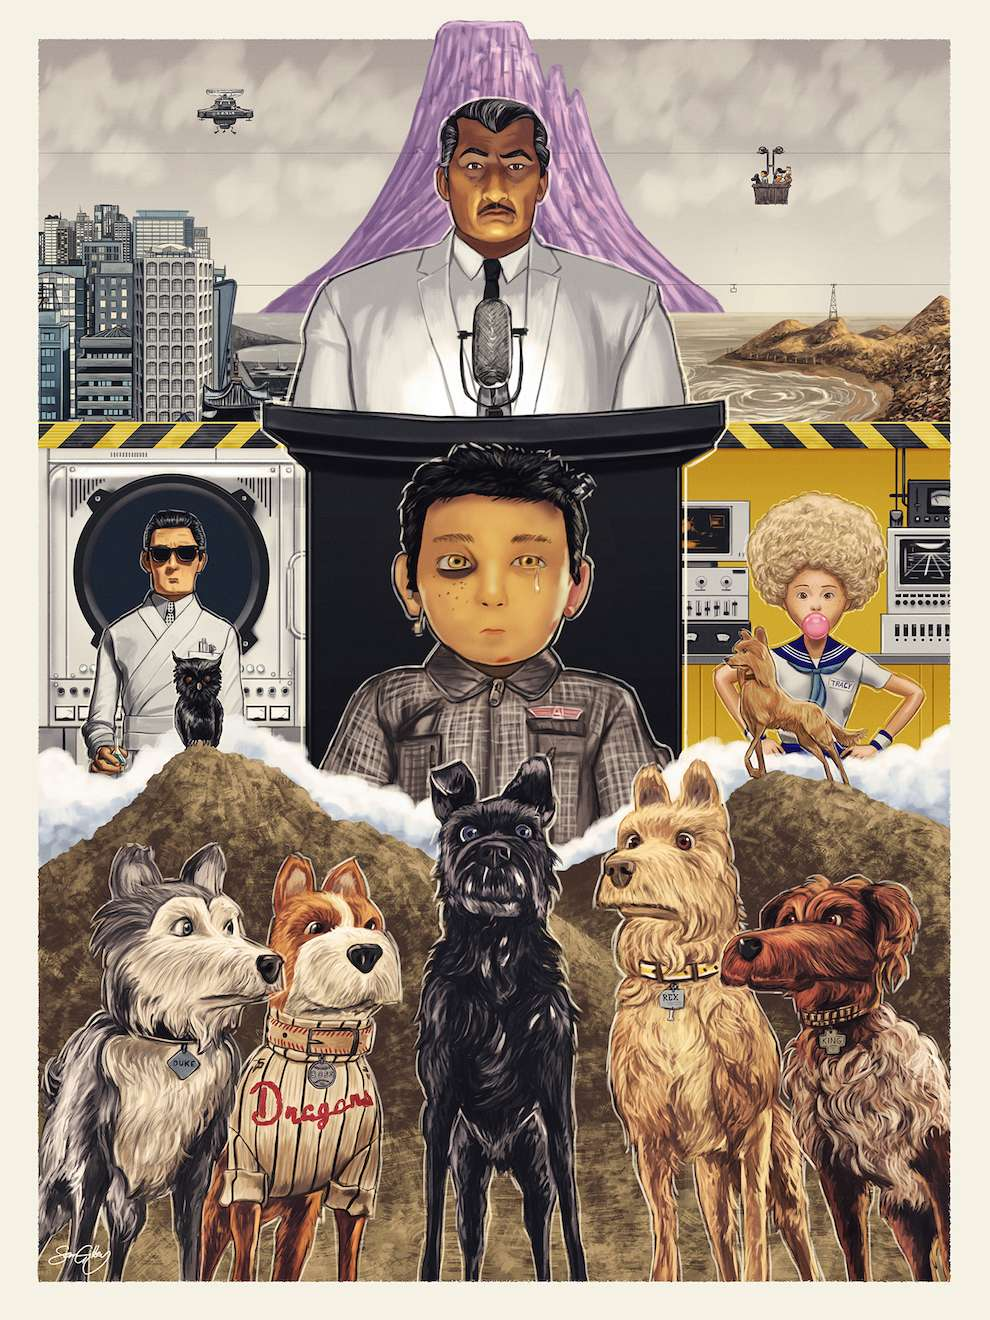 Sam  Gilbey, Digital painterly poster of an animated film by Wes Anderson, Isle of dogs.